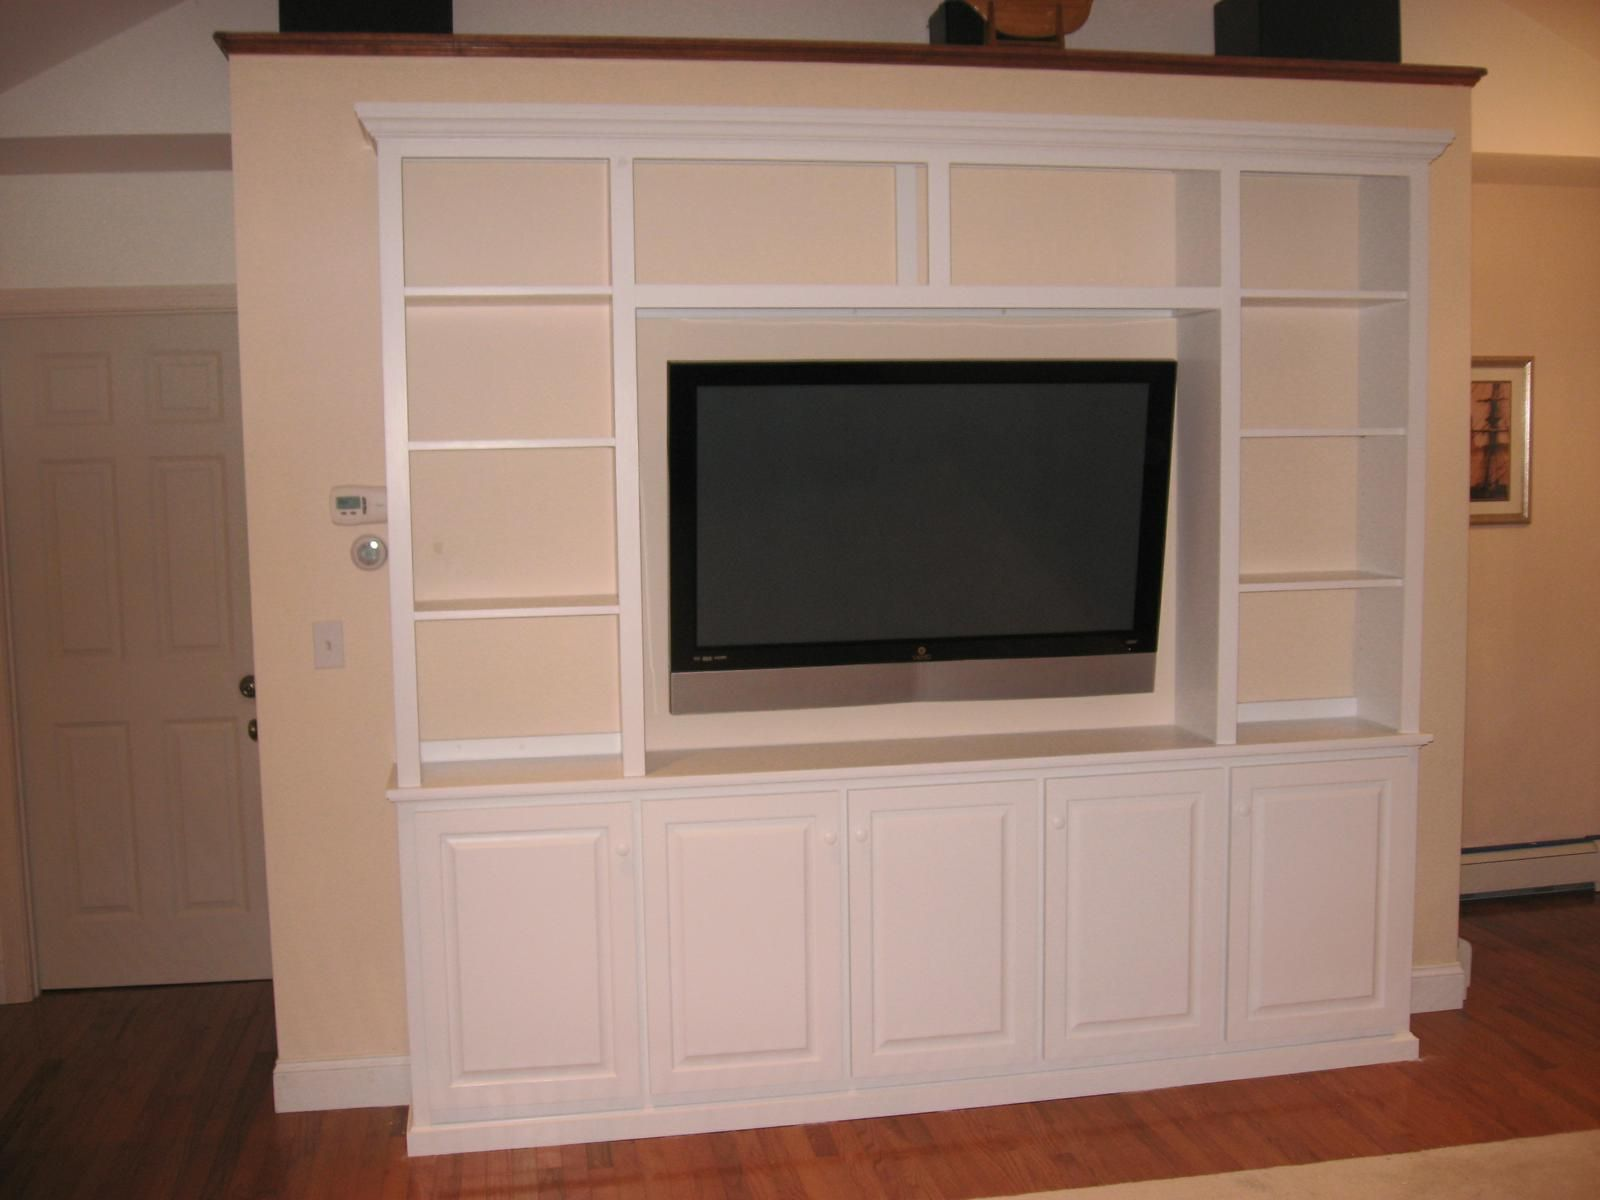 Lapierre cabinetry custom home theater cabinets bathroom cabinets - Entertainment Center